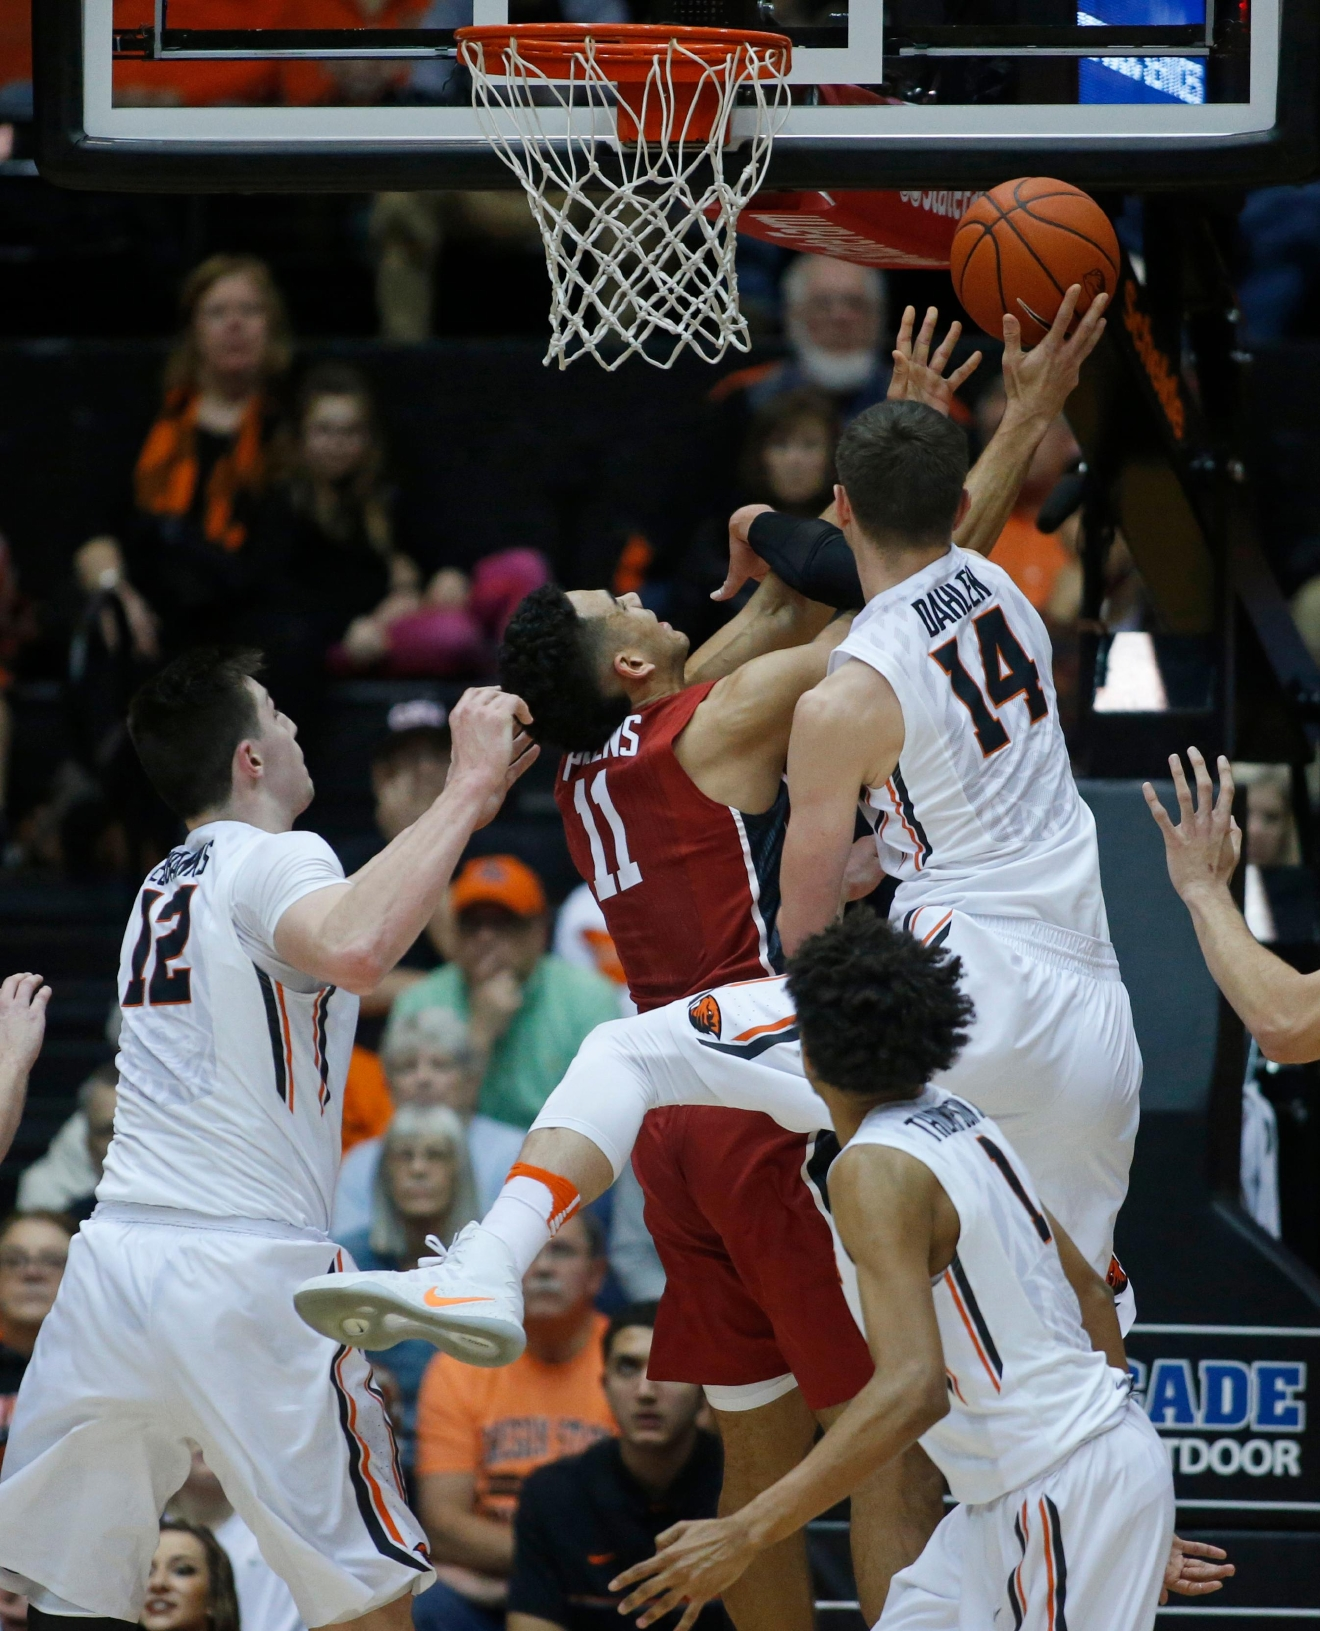 Stanford's Dorian Pickens (11) is fouled by Oregon State's Matt Dahlen (14) during the first half of an NCAA college basketball game in Corvallis, Ore., Thursday, Jan. 19, 2017. (AP Photo/Timothy J. Gonzalez)